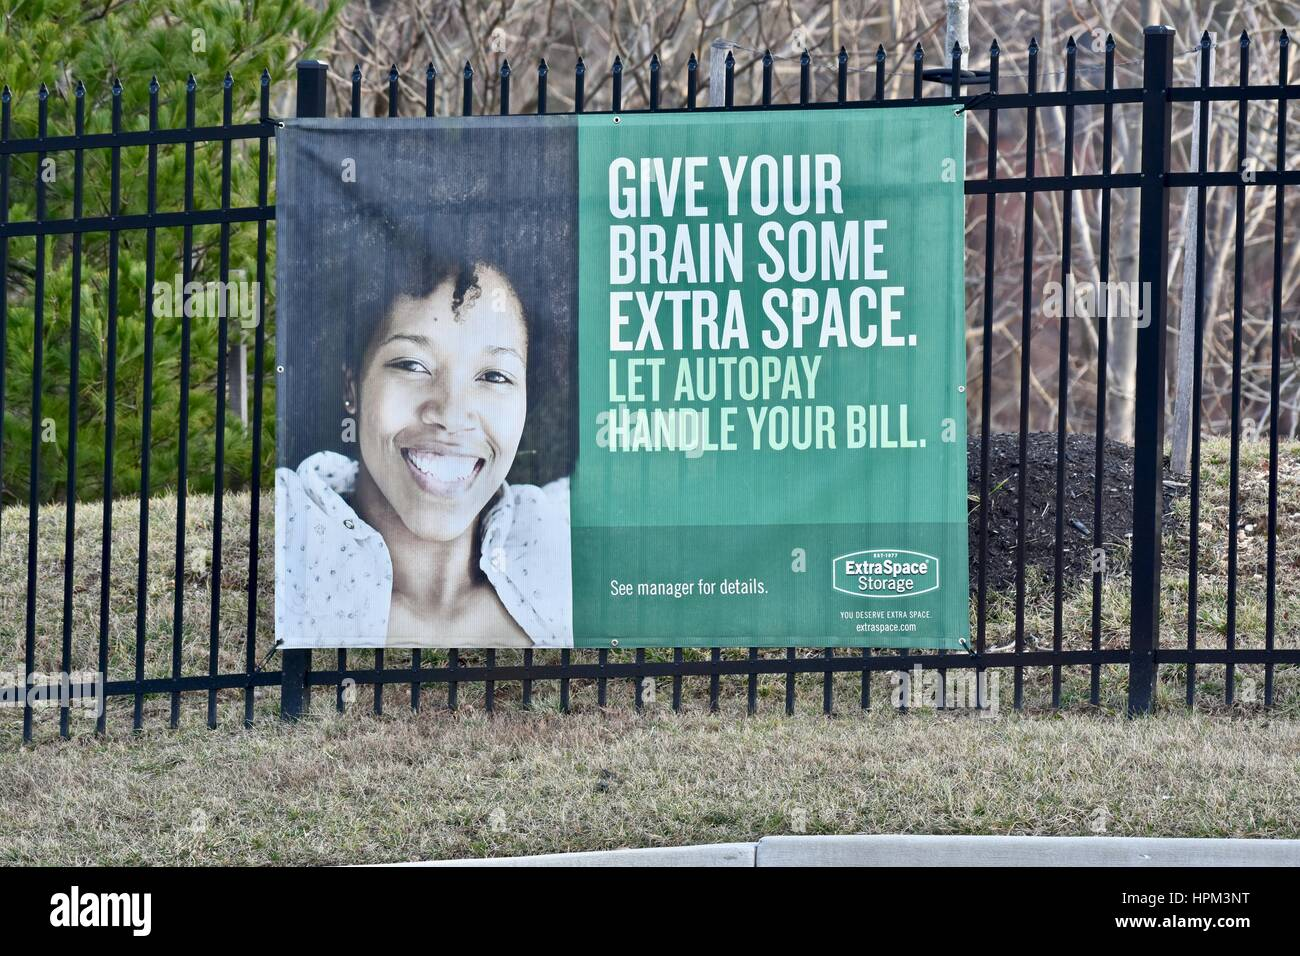 Extra Space storage sign - Stock Image